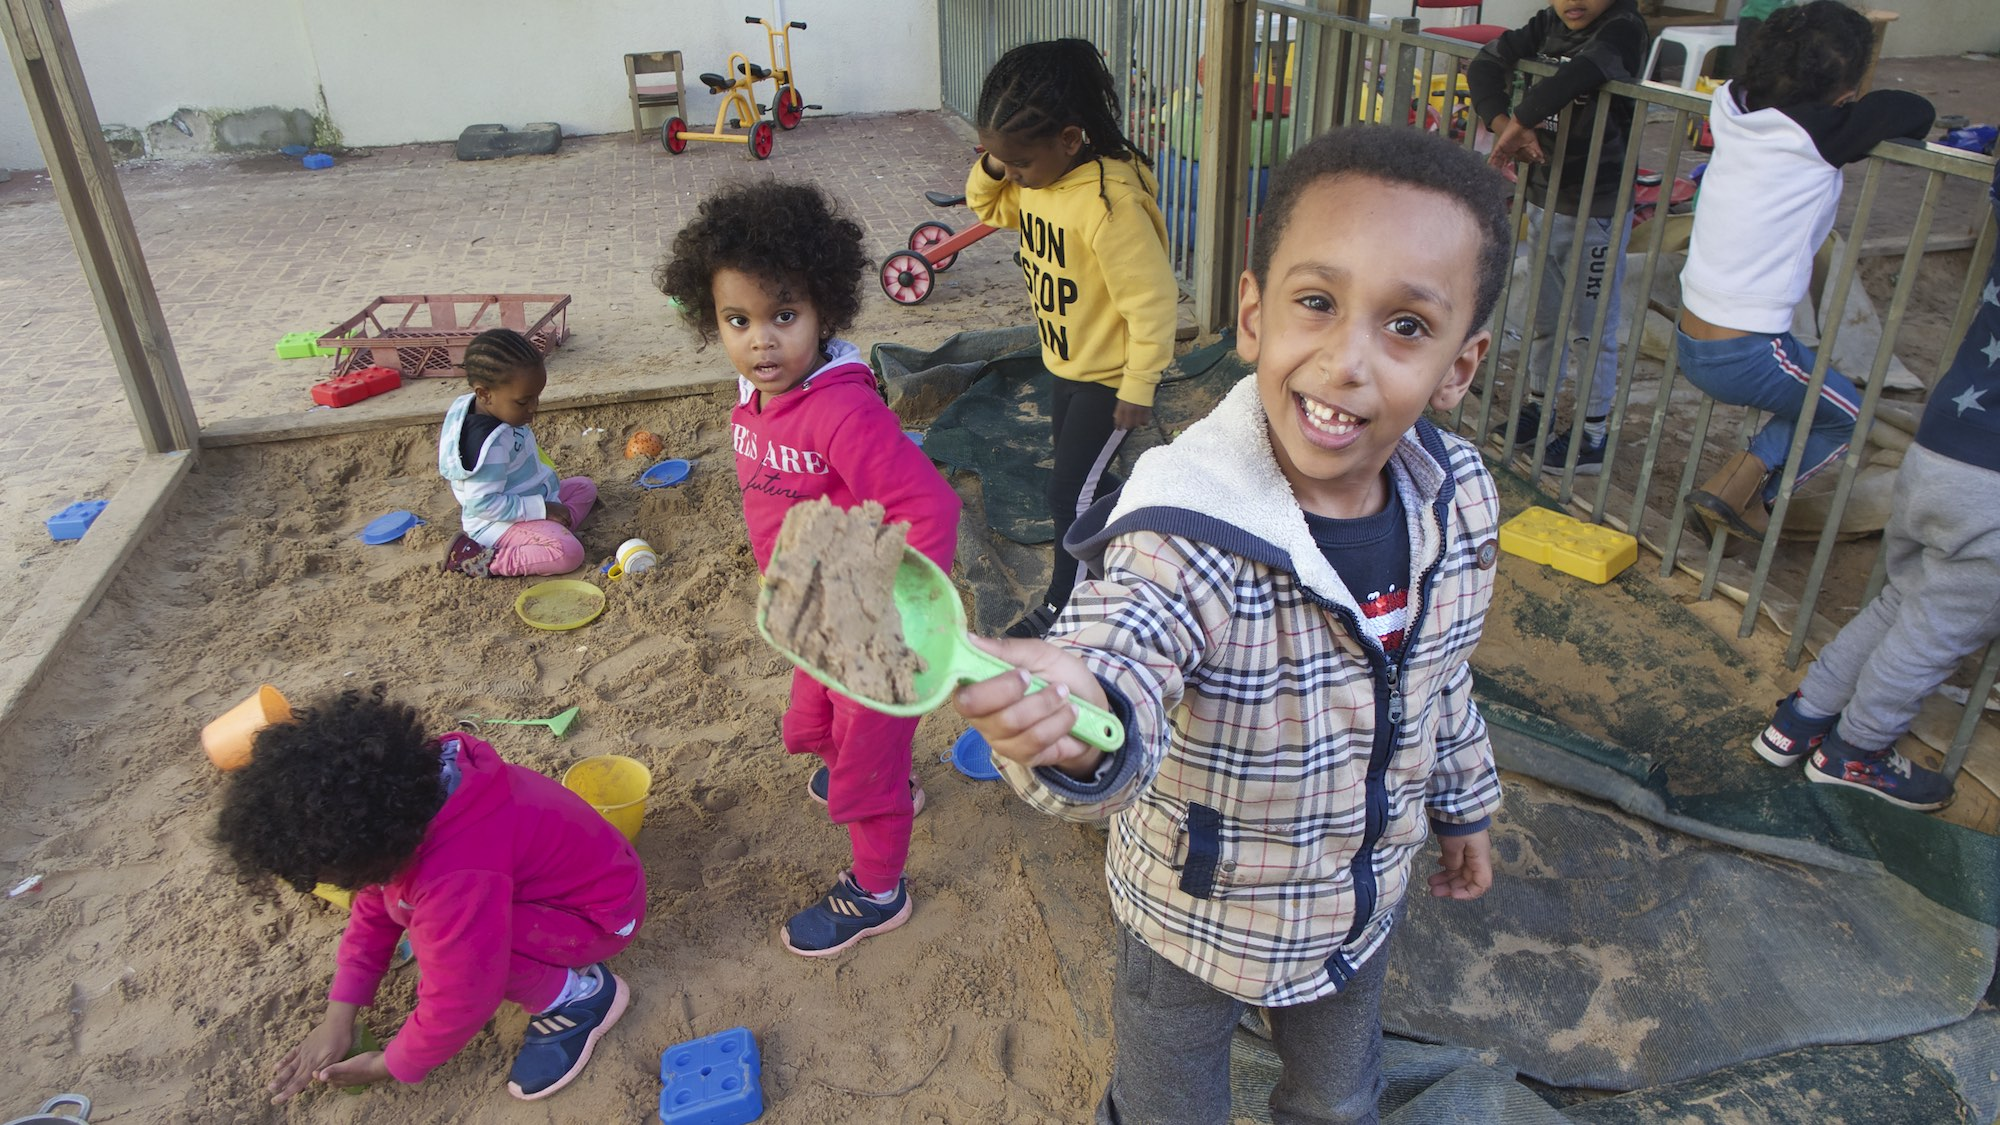 UNITAF children playing in tel aviv